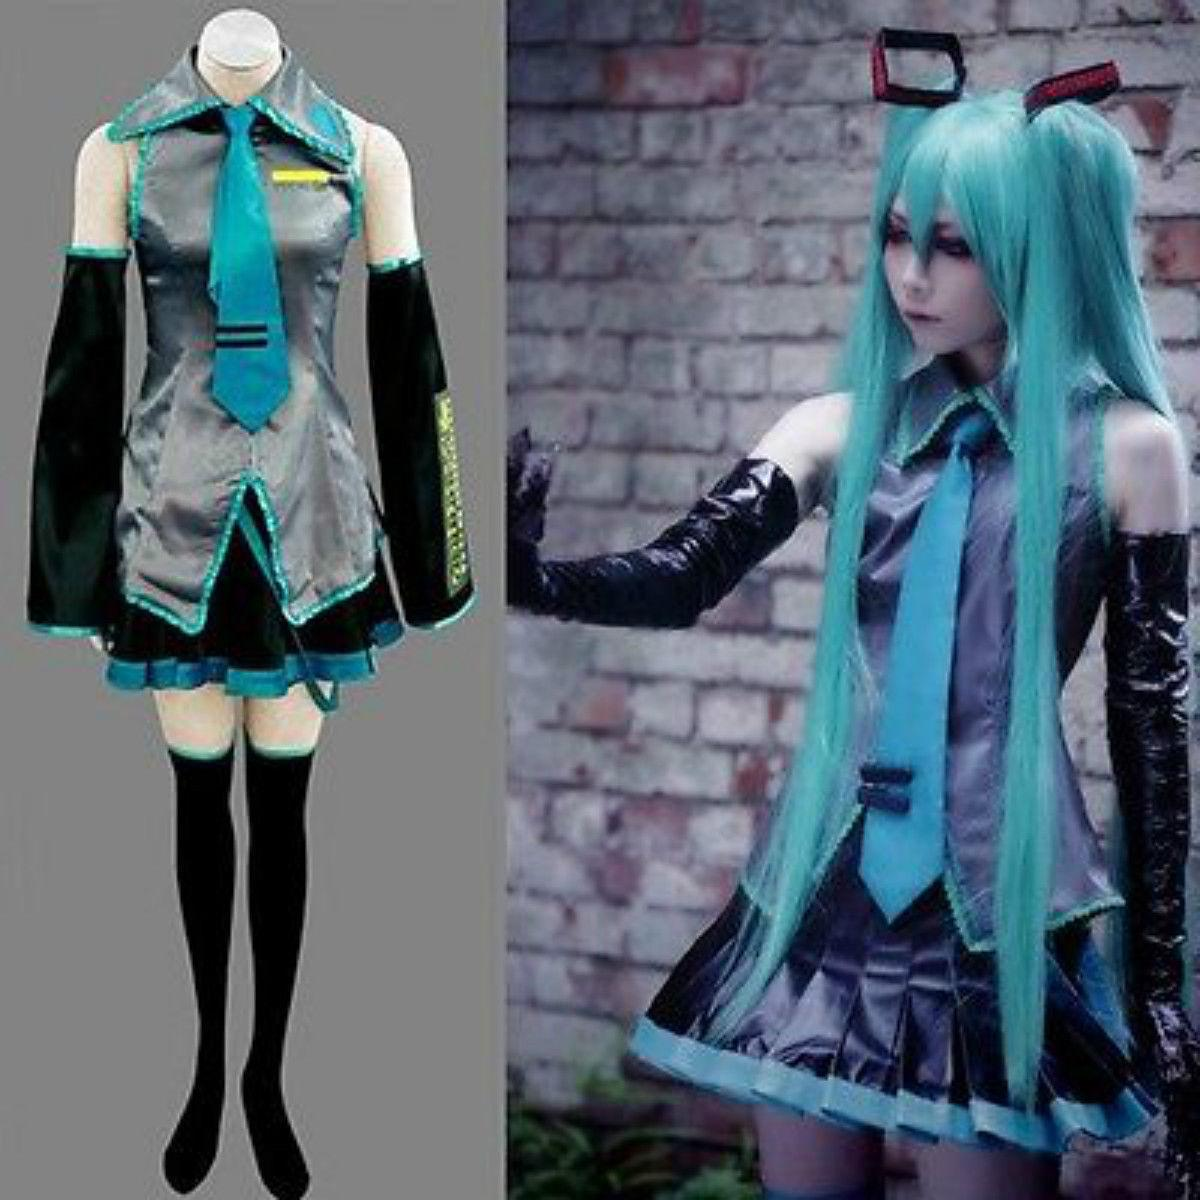 Details About New Vocaloid Hatsune Miku Cosplay Anime Costume A Team Costume Dress Themes For Parties From Friendshop $30.16| Dhgate.Com  sc 1 st  DHgate.com & Details About New Vocaloid Hatsune Miku Cosplay Anime Costume A Team ...